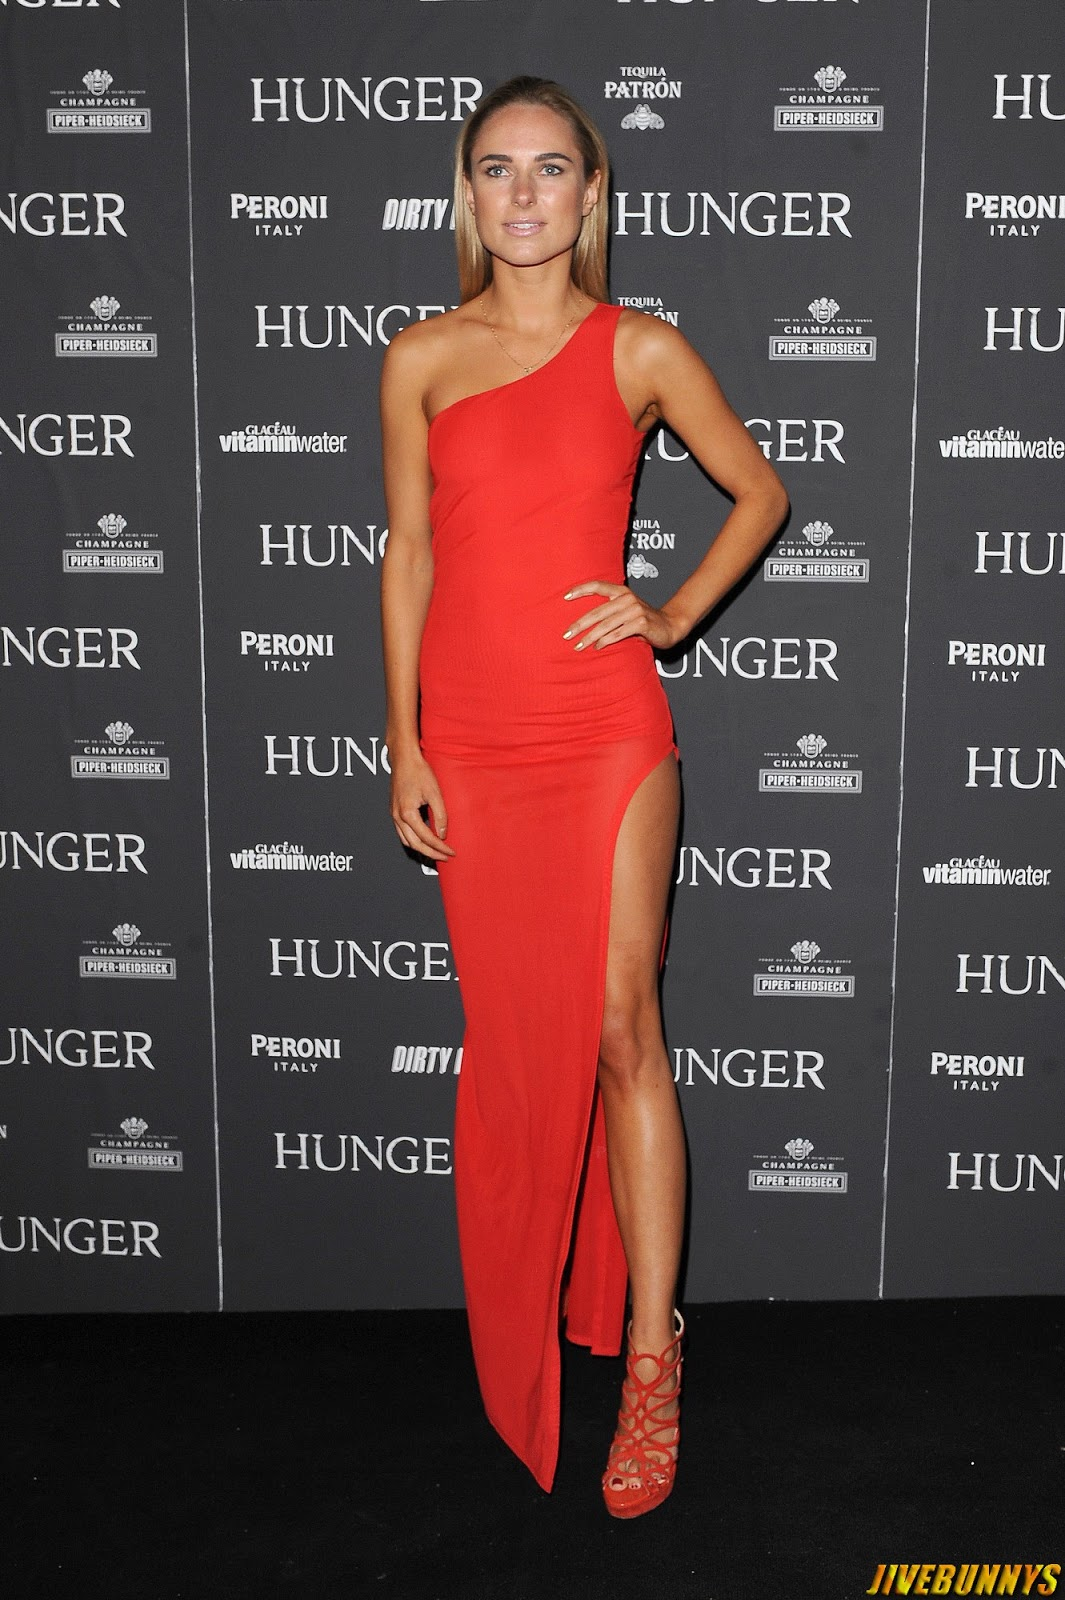 Kimberley Garner @ Hunger Magazine Issue 7 launch party in London - 12/09/2014